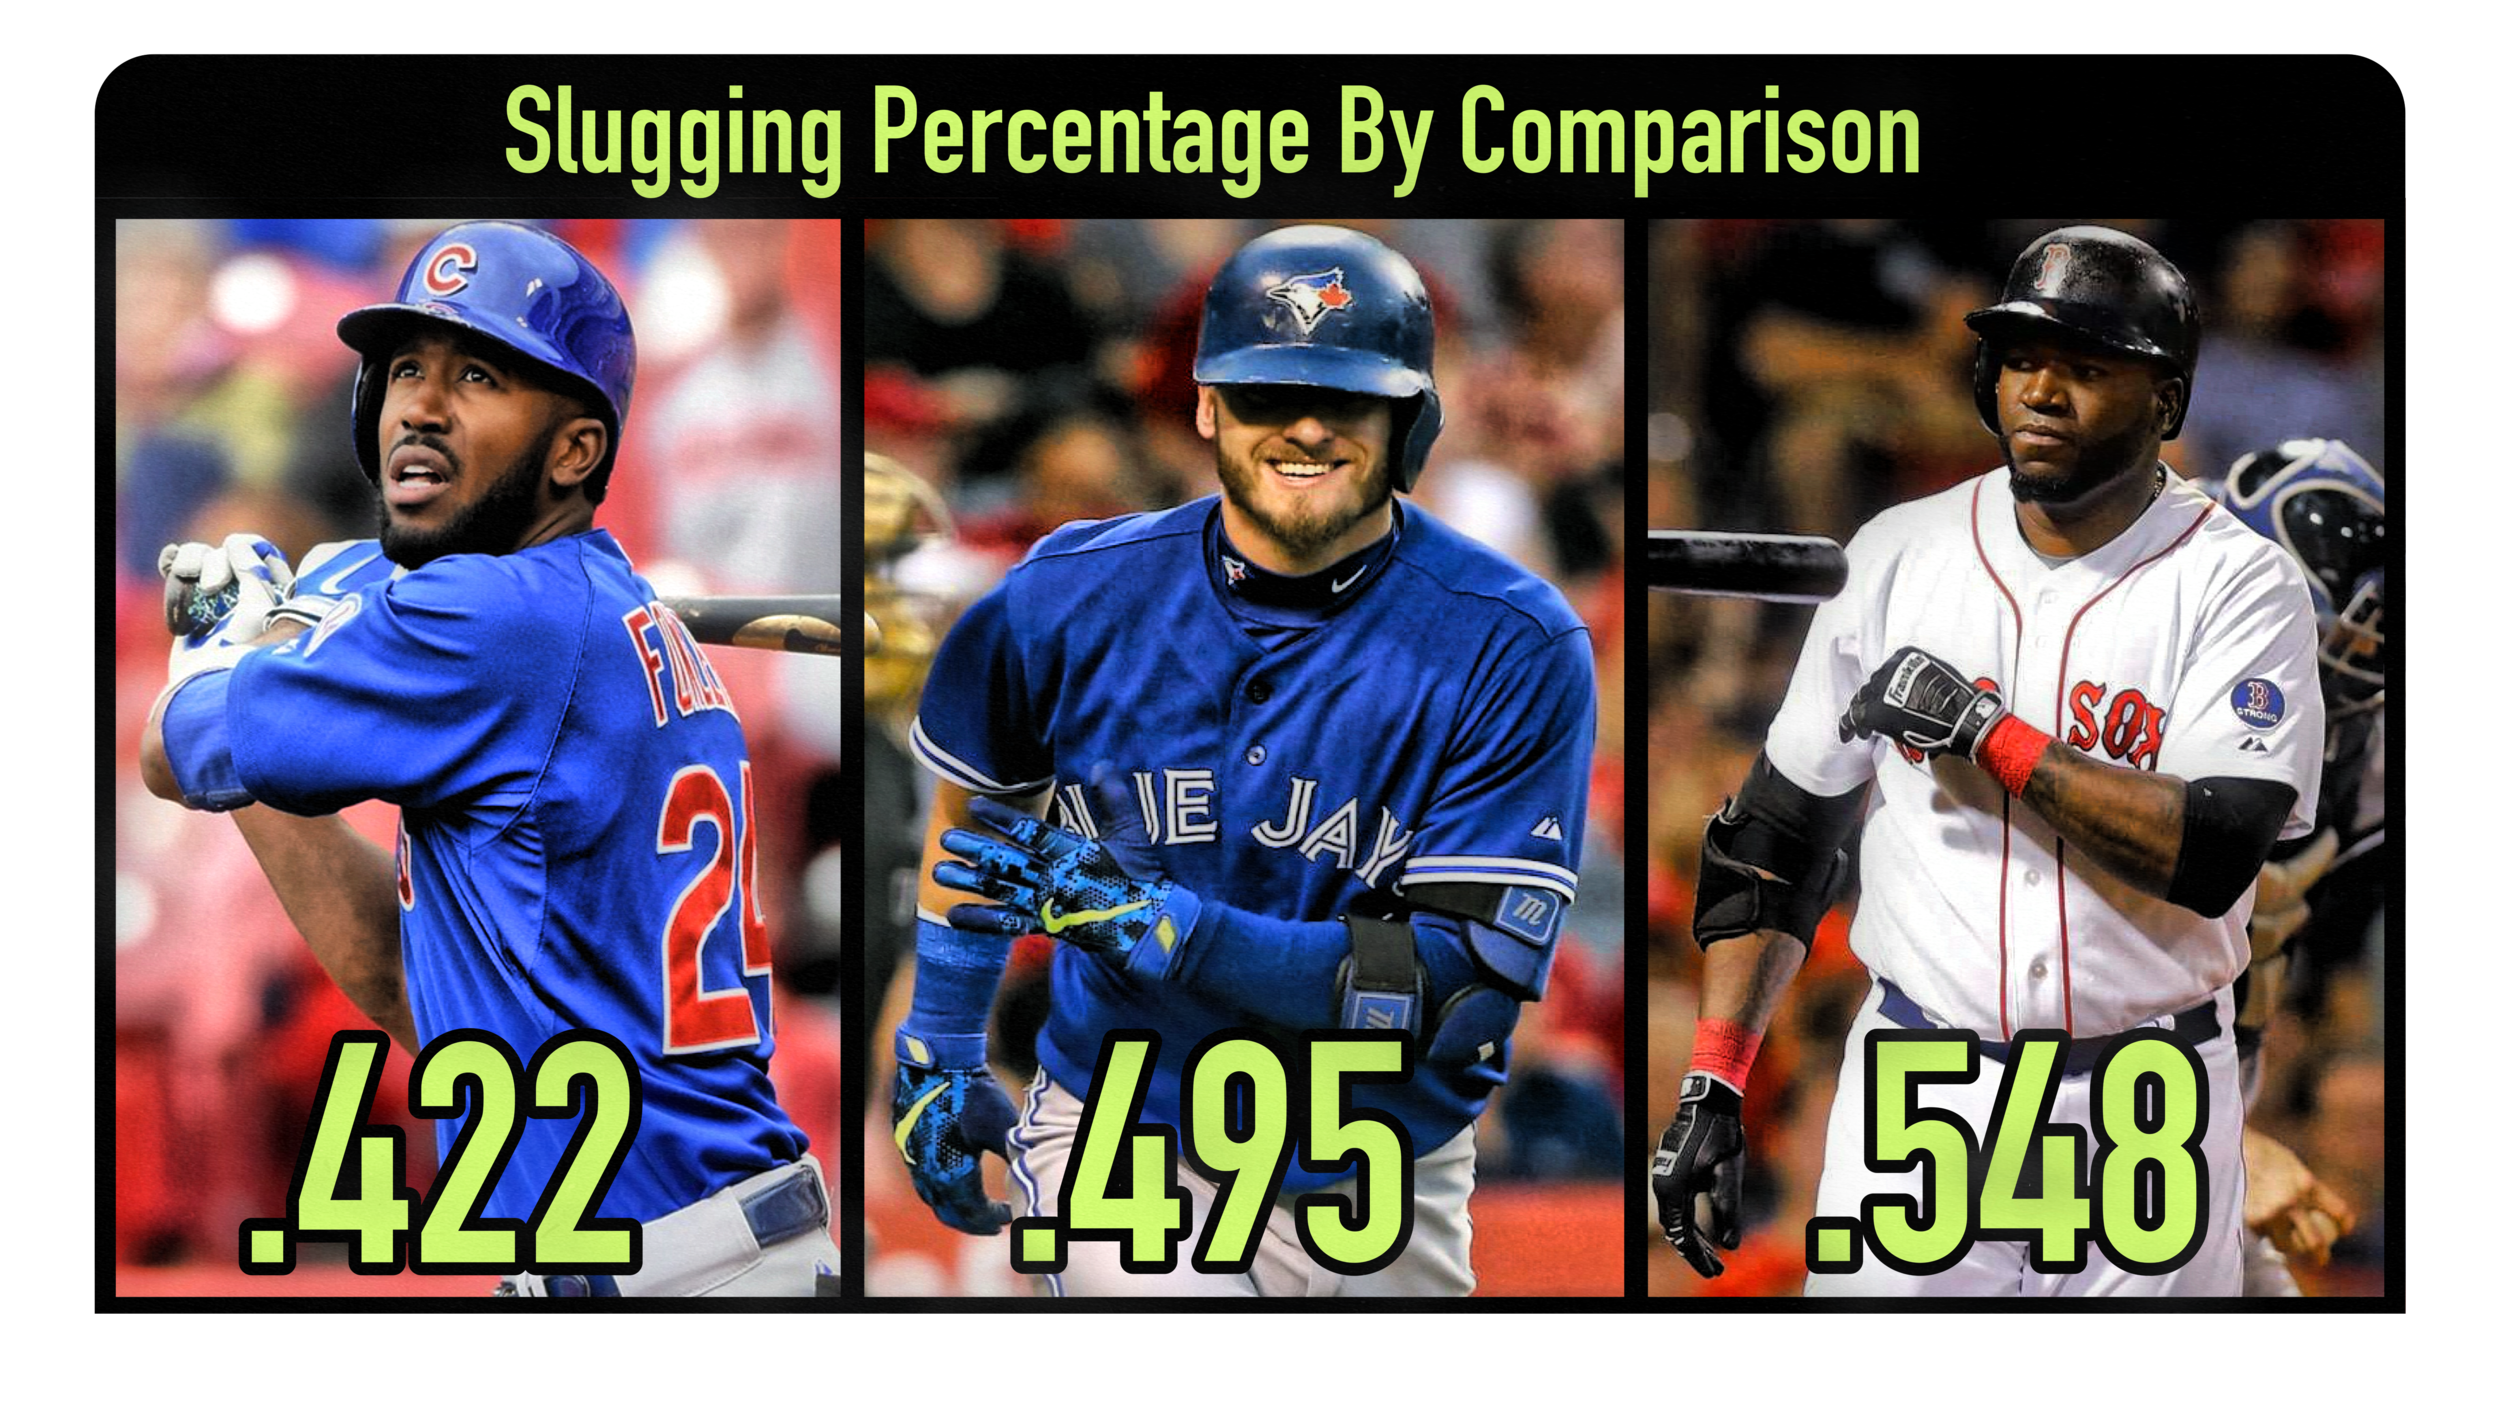 By comparison, where does Bryce Harper's slugging percentage rank him amongst players like Dexter Fowler of the Chicago Cubs, Josh Donaldson of the Toronto Blue Jays, and David Ortiz of the Boston Red Sox?